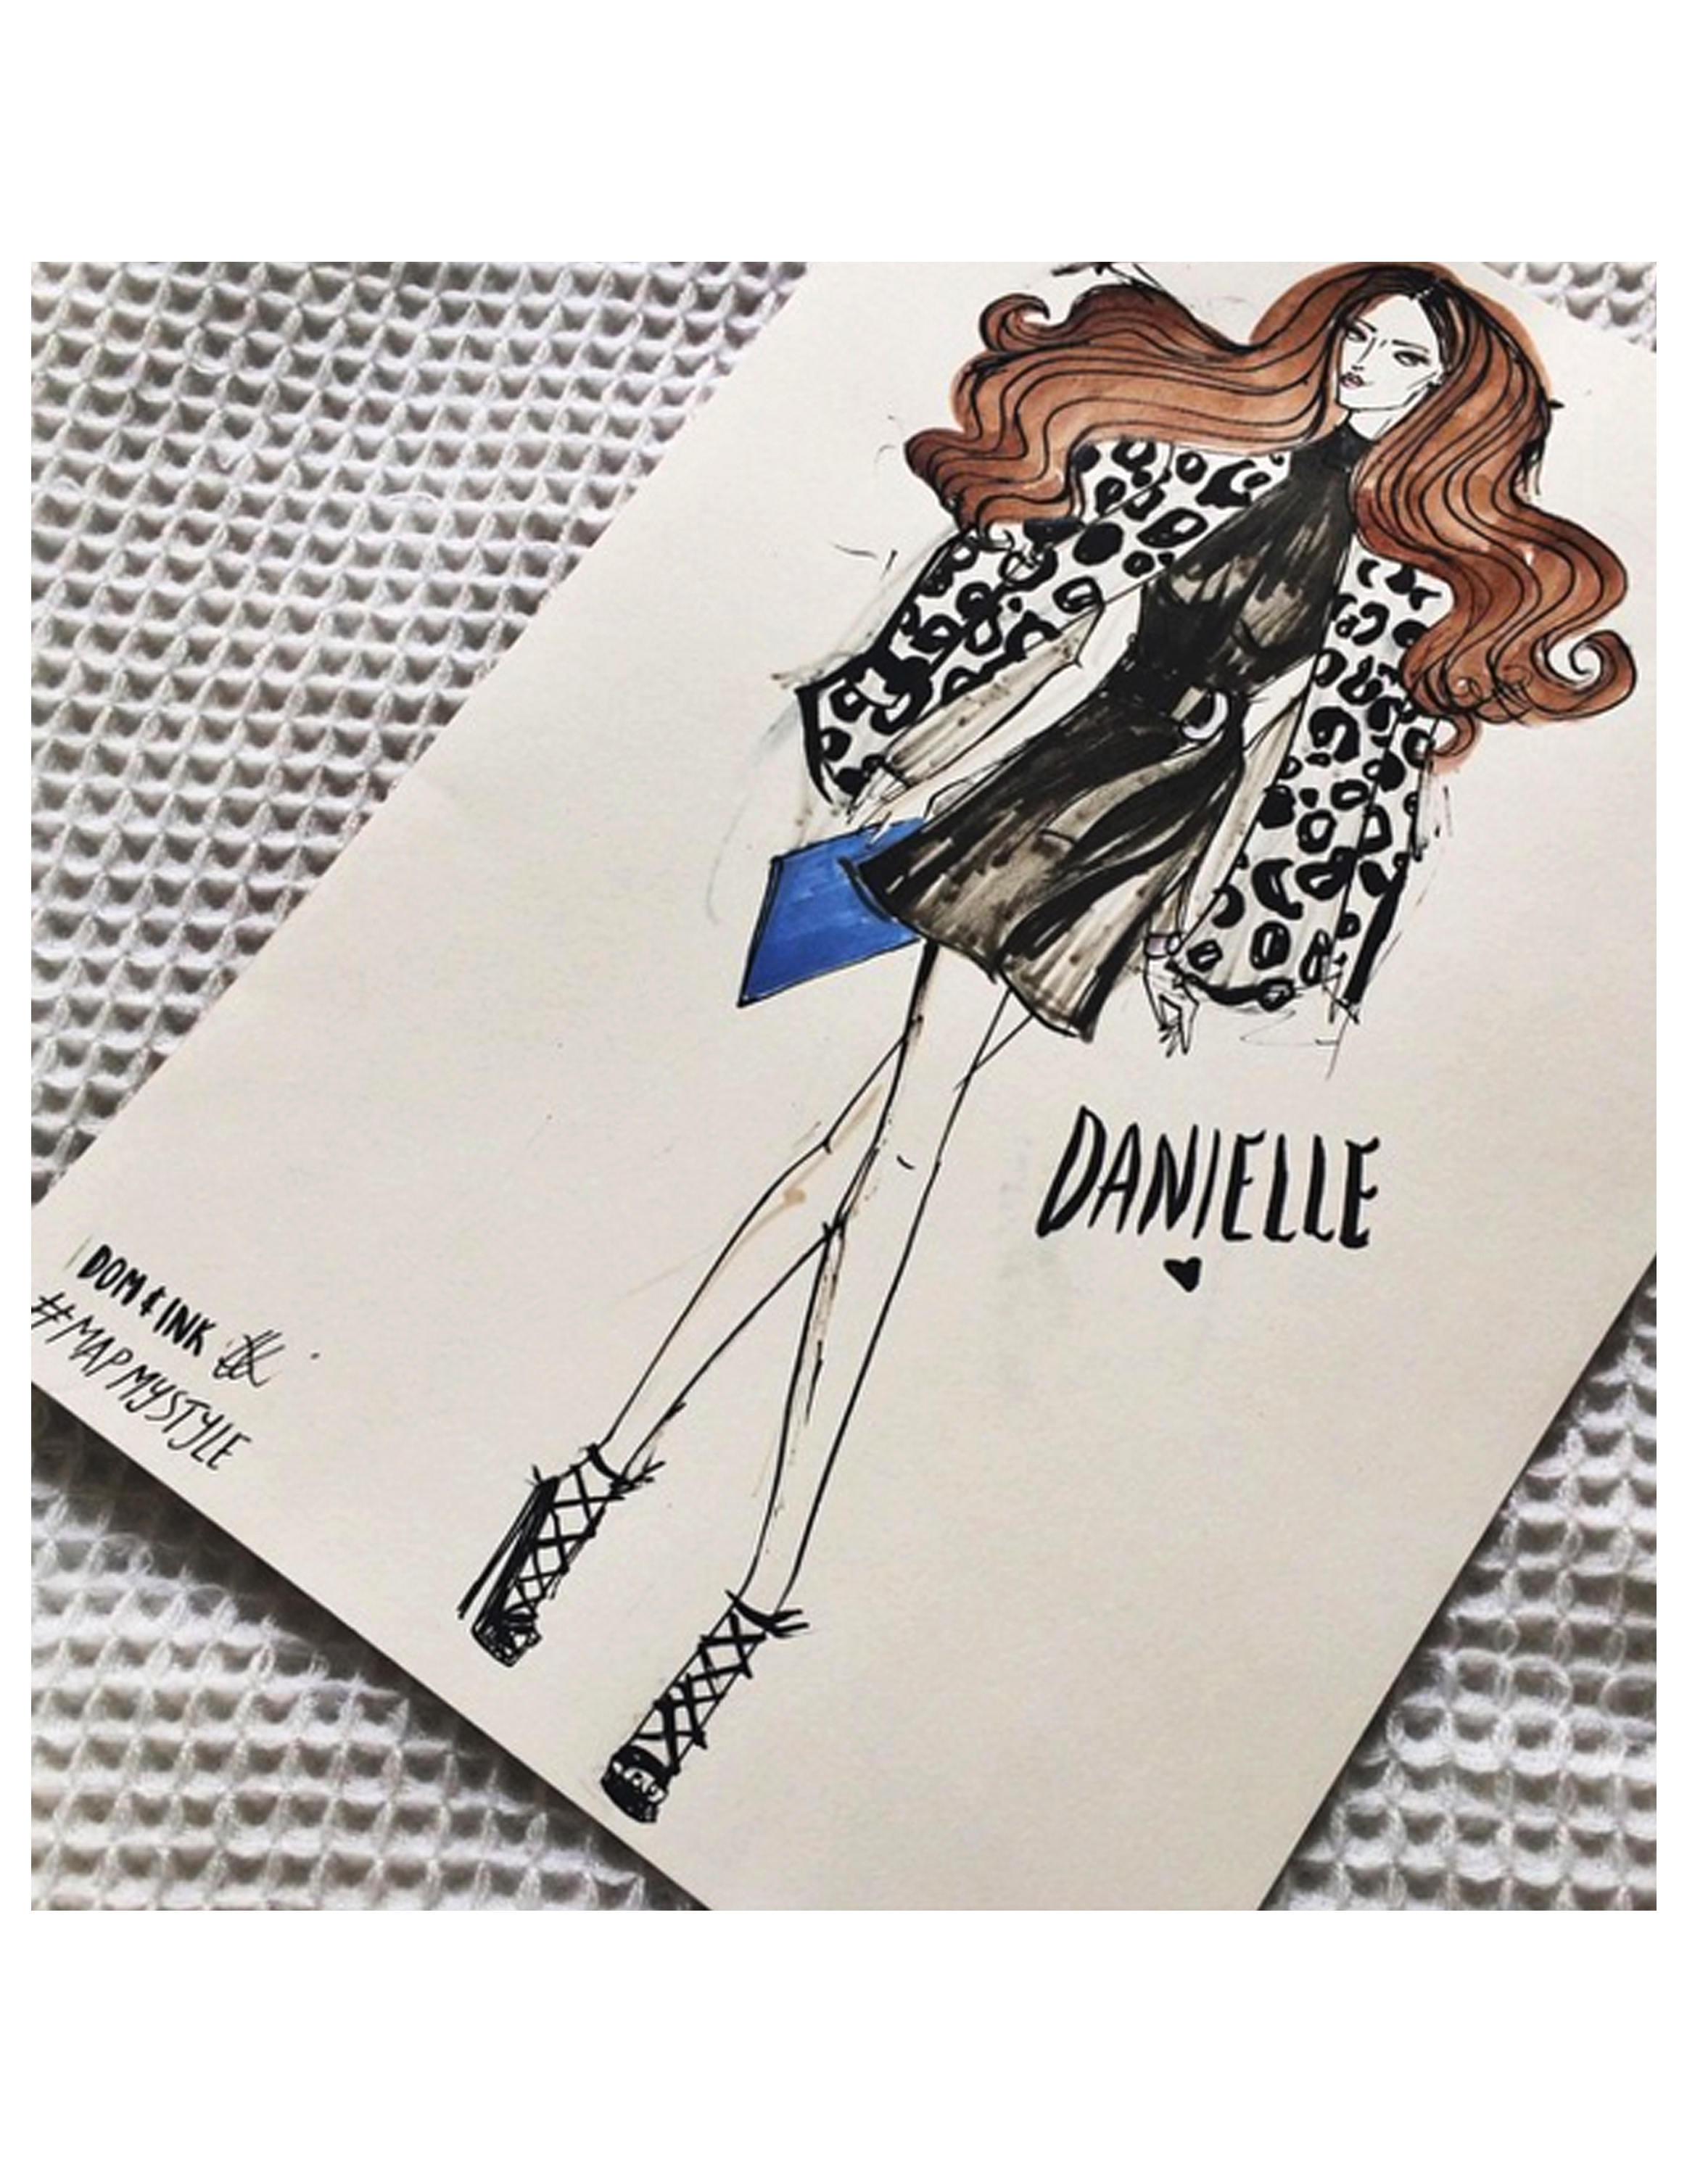 Danielle Peazer/ The Idle Lane